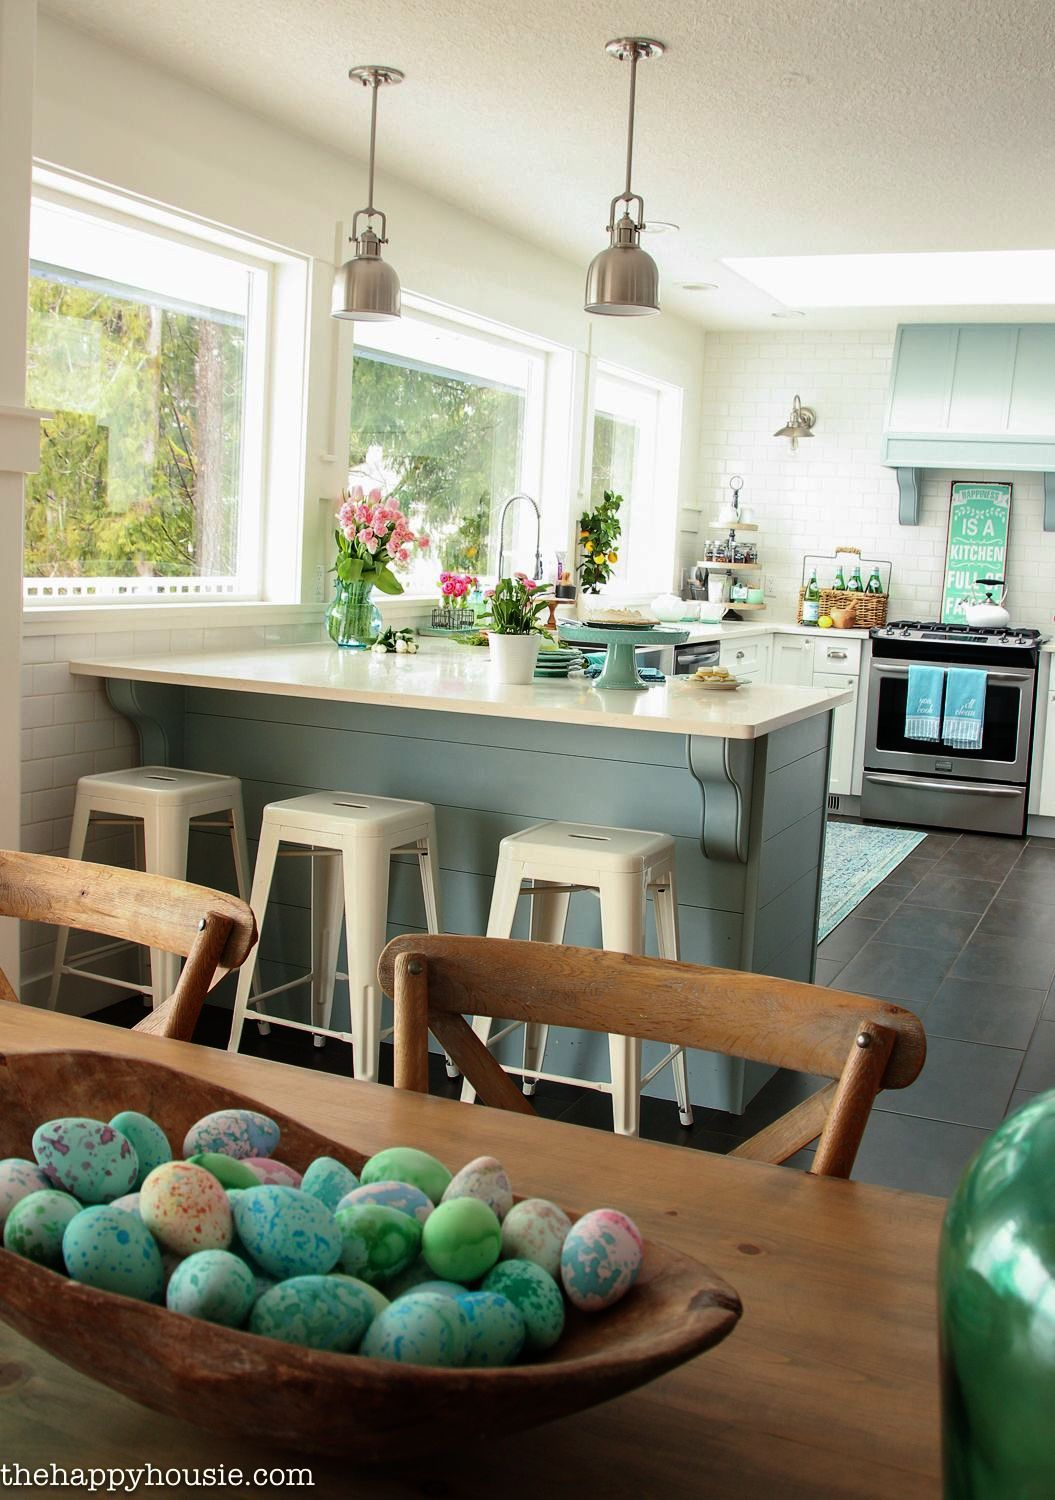 Look what i discovered beach house decor ideas south africa